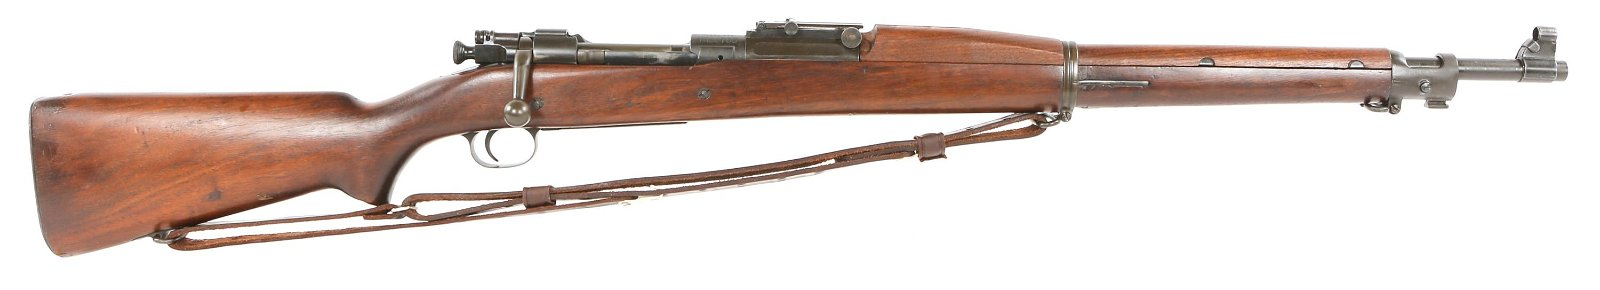 US SPRINGFIELD MODEL 1903A1.30-06 SPRG RIFLE